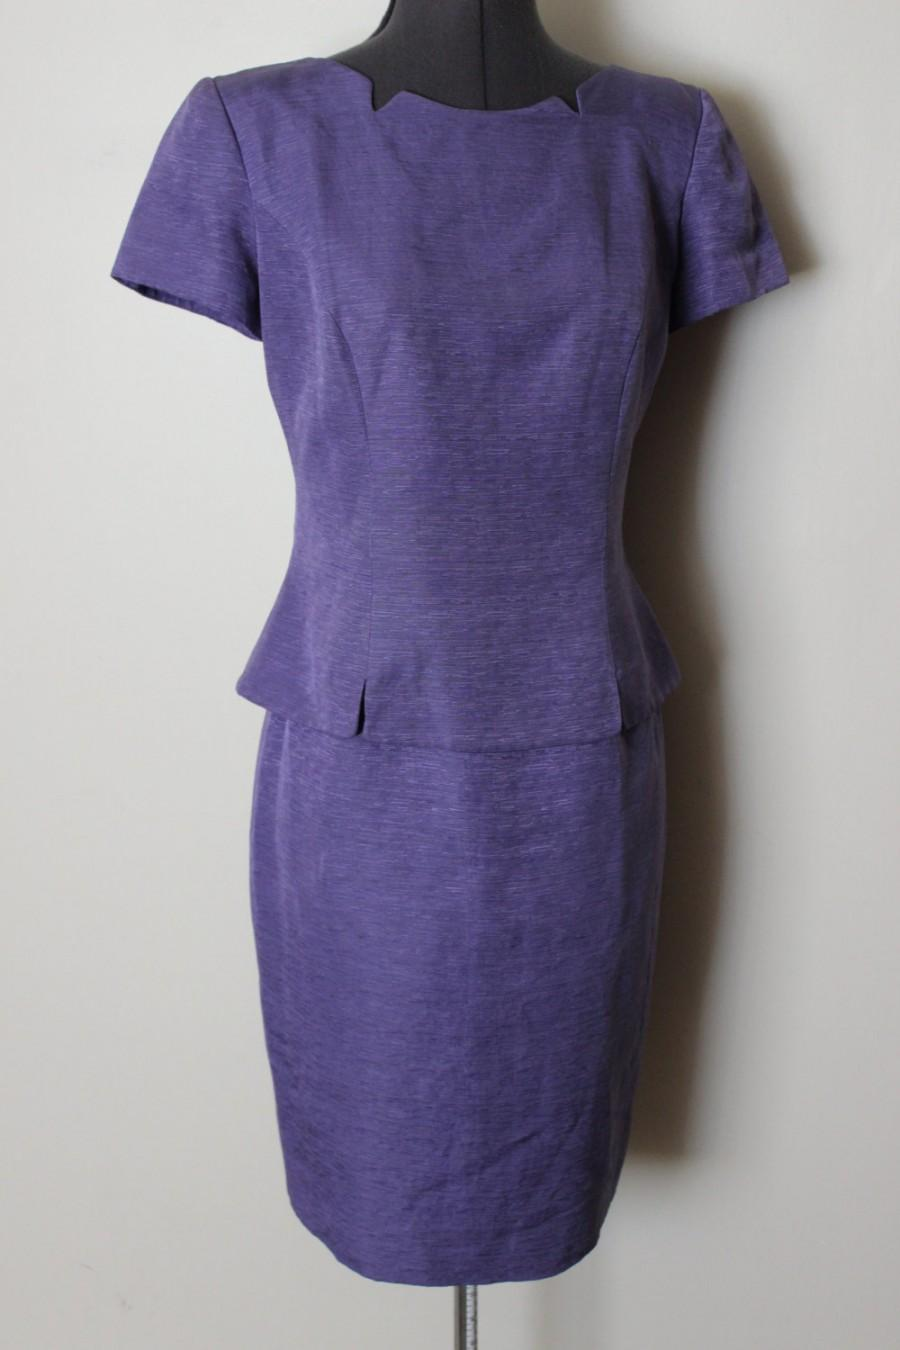 Mariage - FREE SHIPPING Vintage Mother of Bride Lavender Purple Silk Dress   Size 6